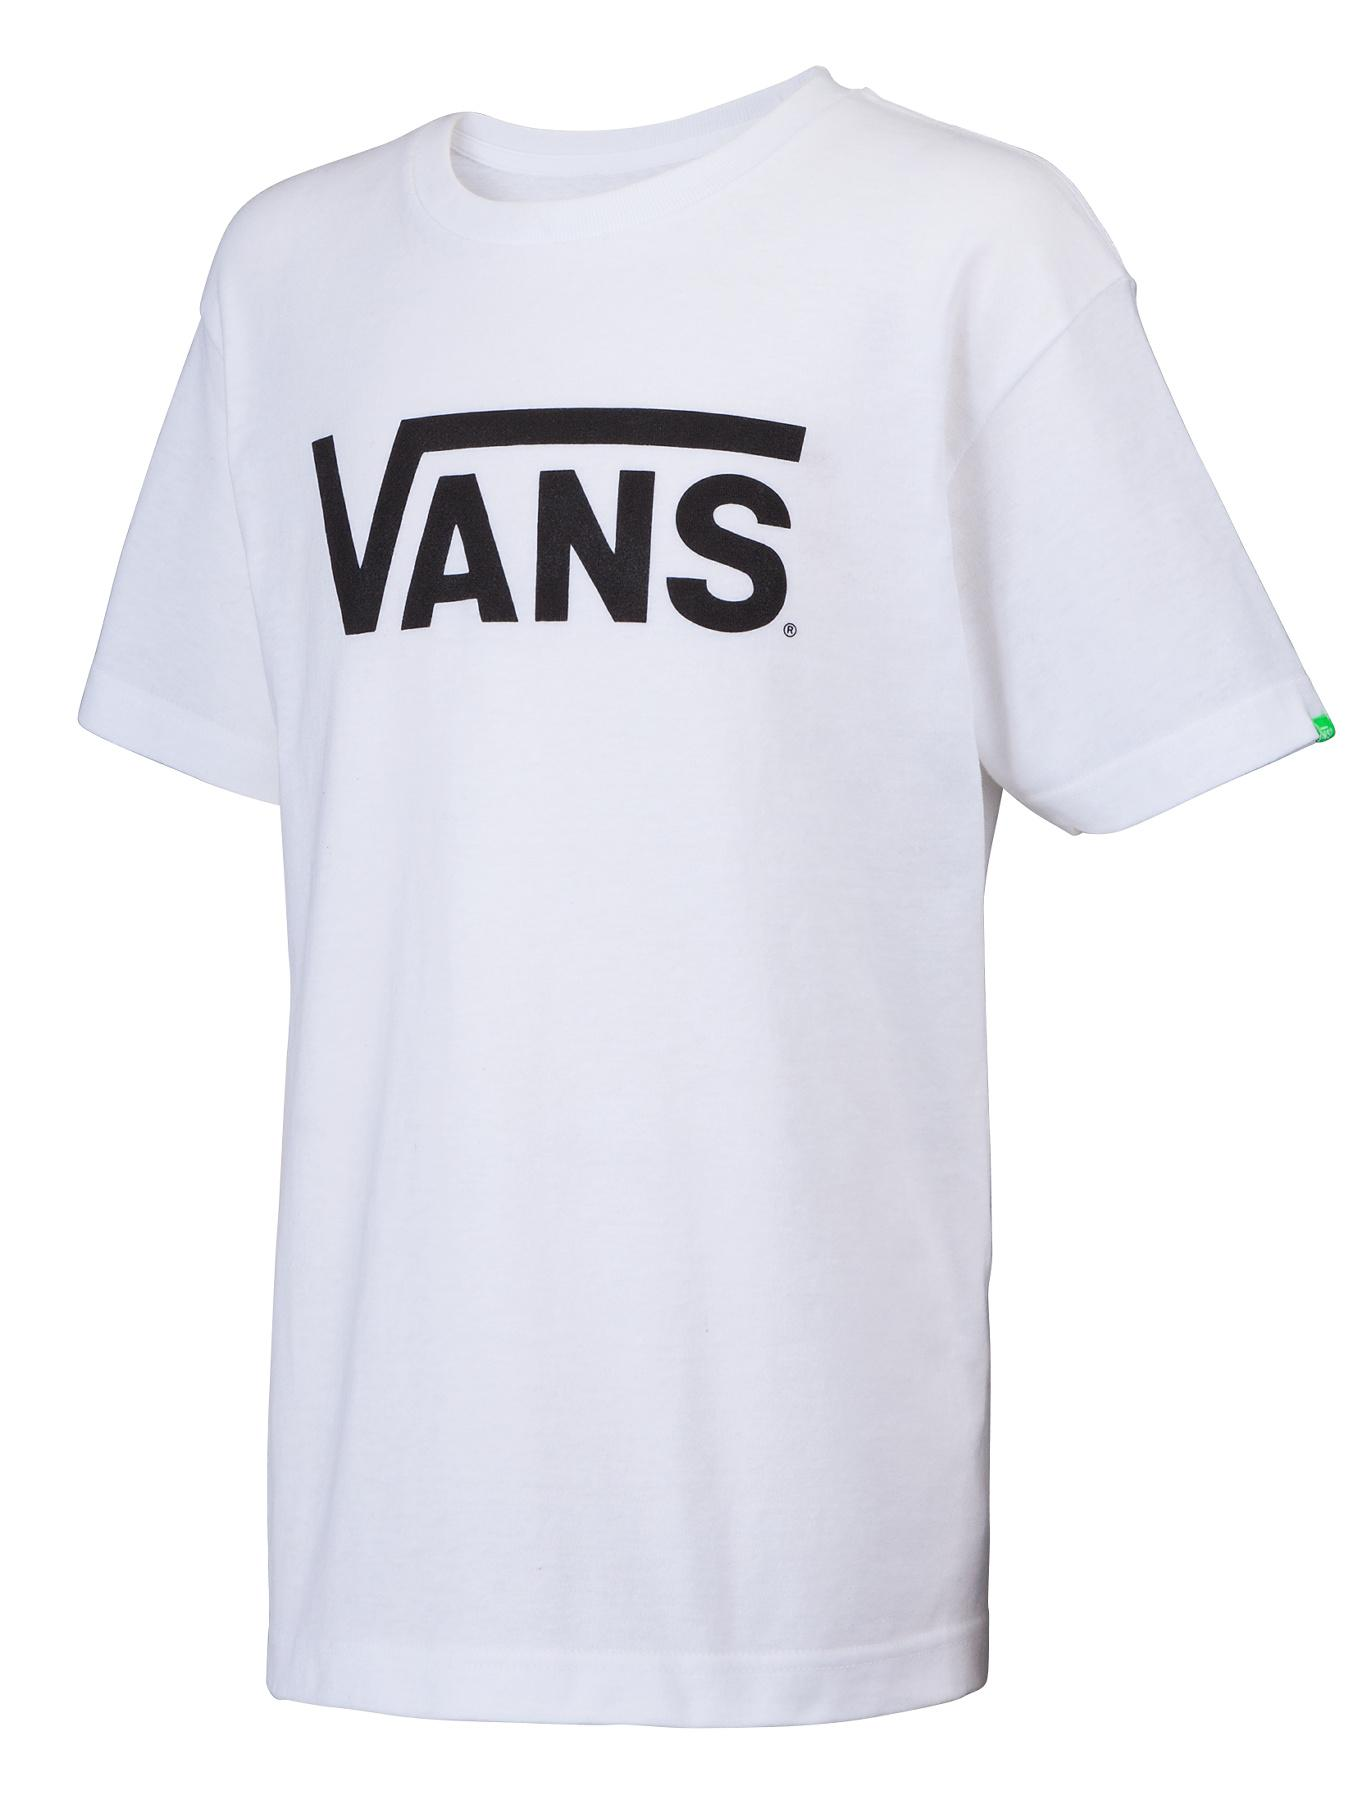 Vans Youth Boys Classic T-shirt - White, White